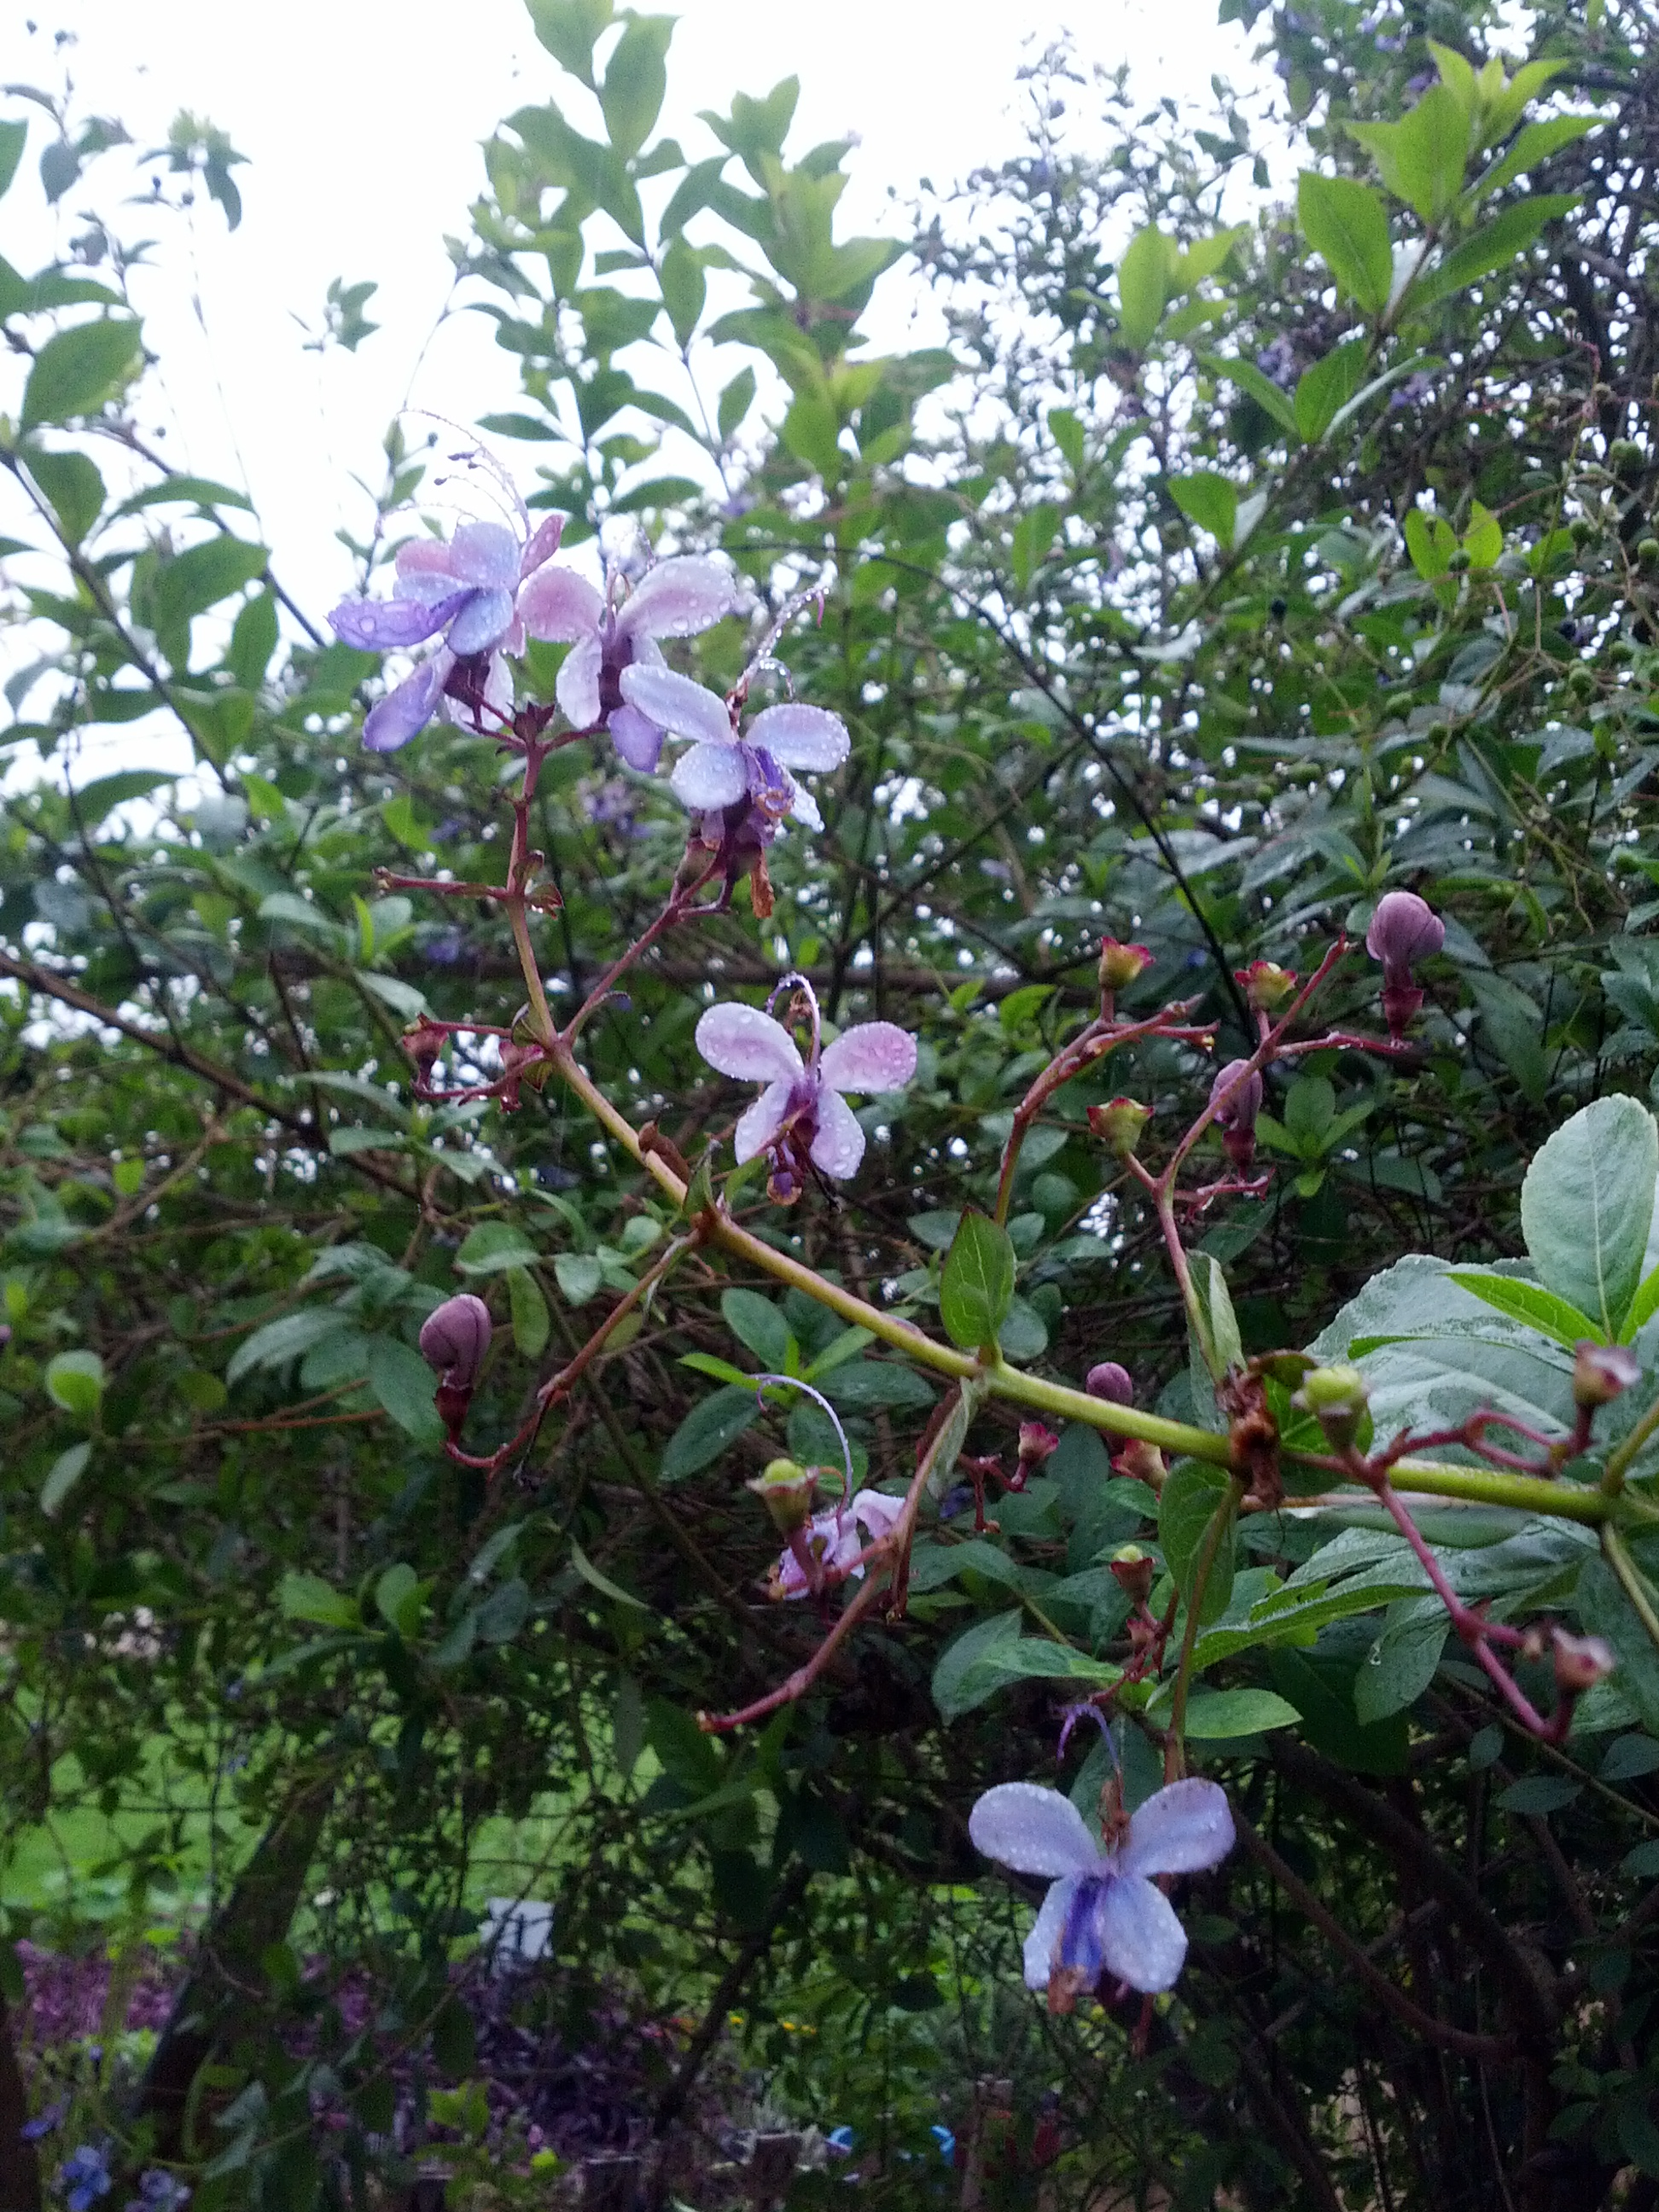 10 outstanding plants with bluemauve flowers the smarter gardener butterfly flower clerodendron uagdense izmirmasajfo Choice Image